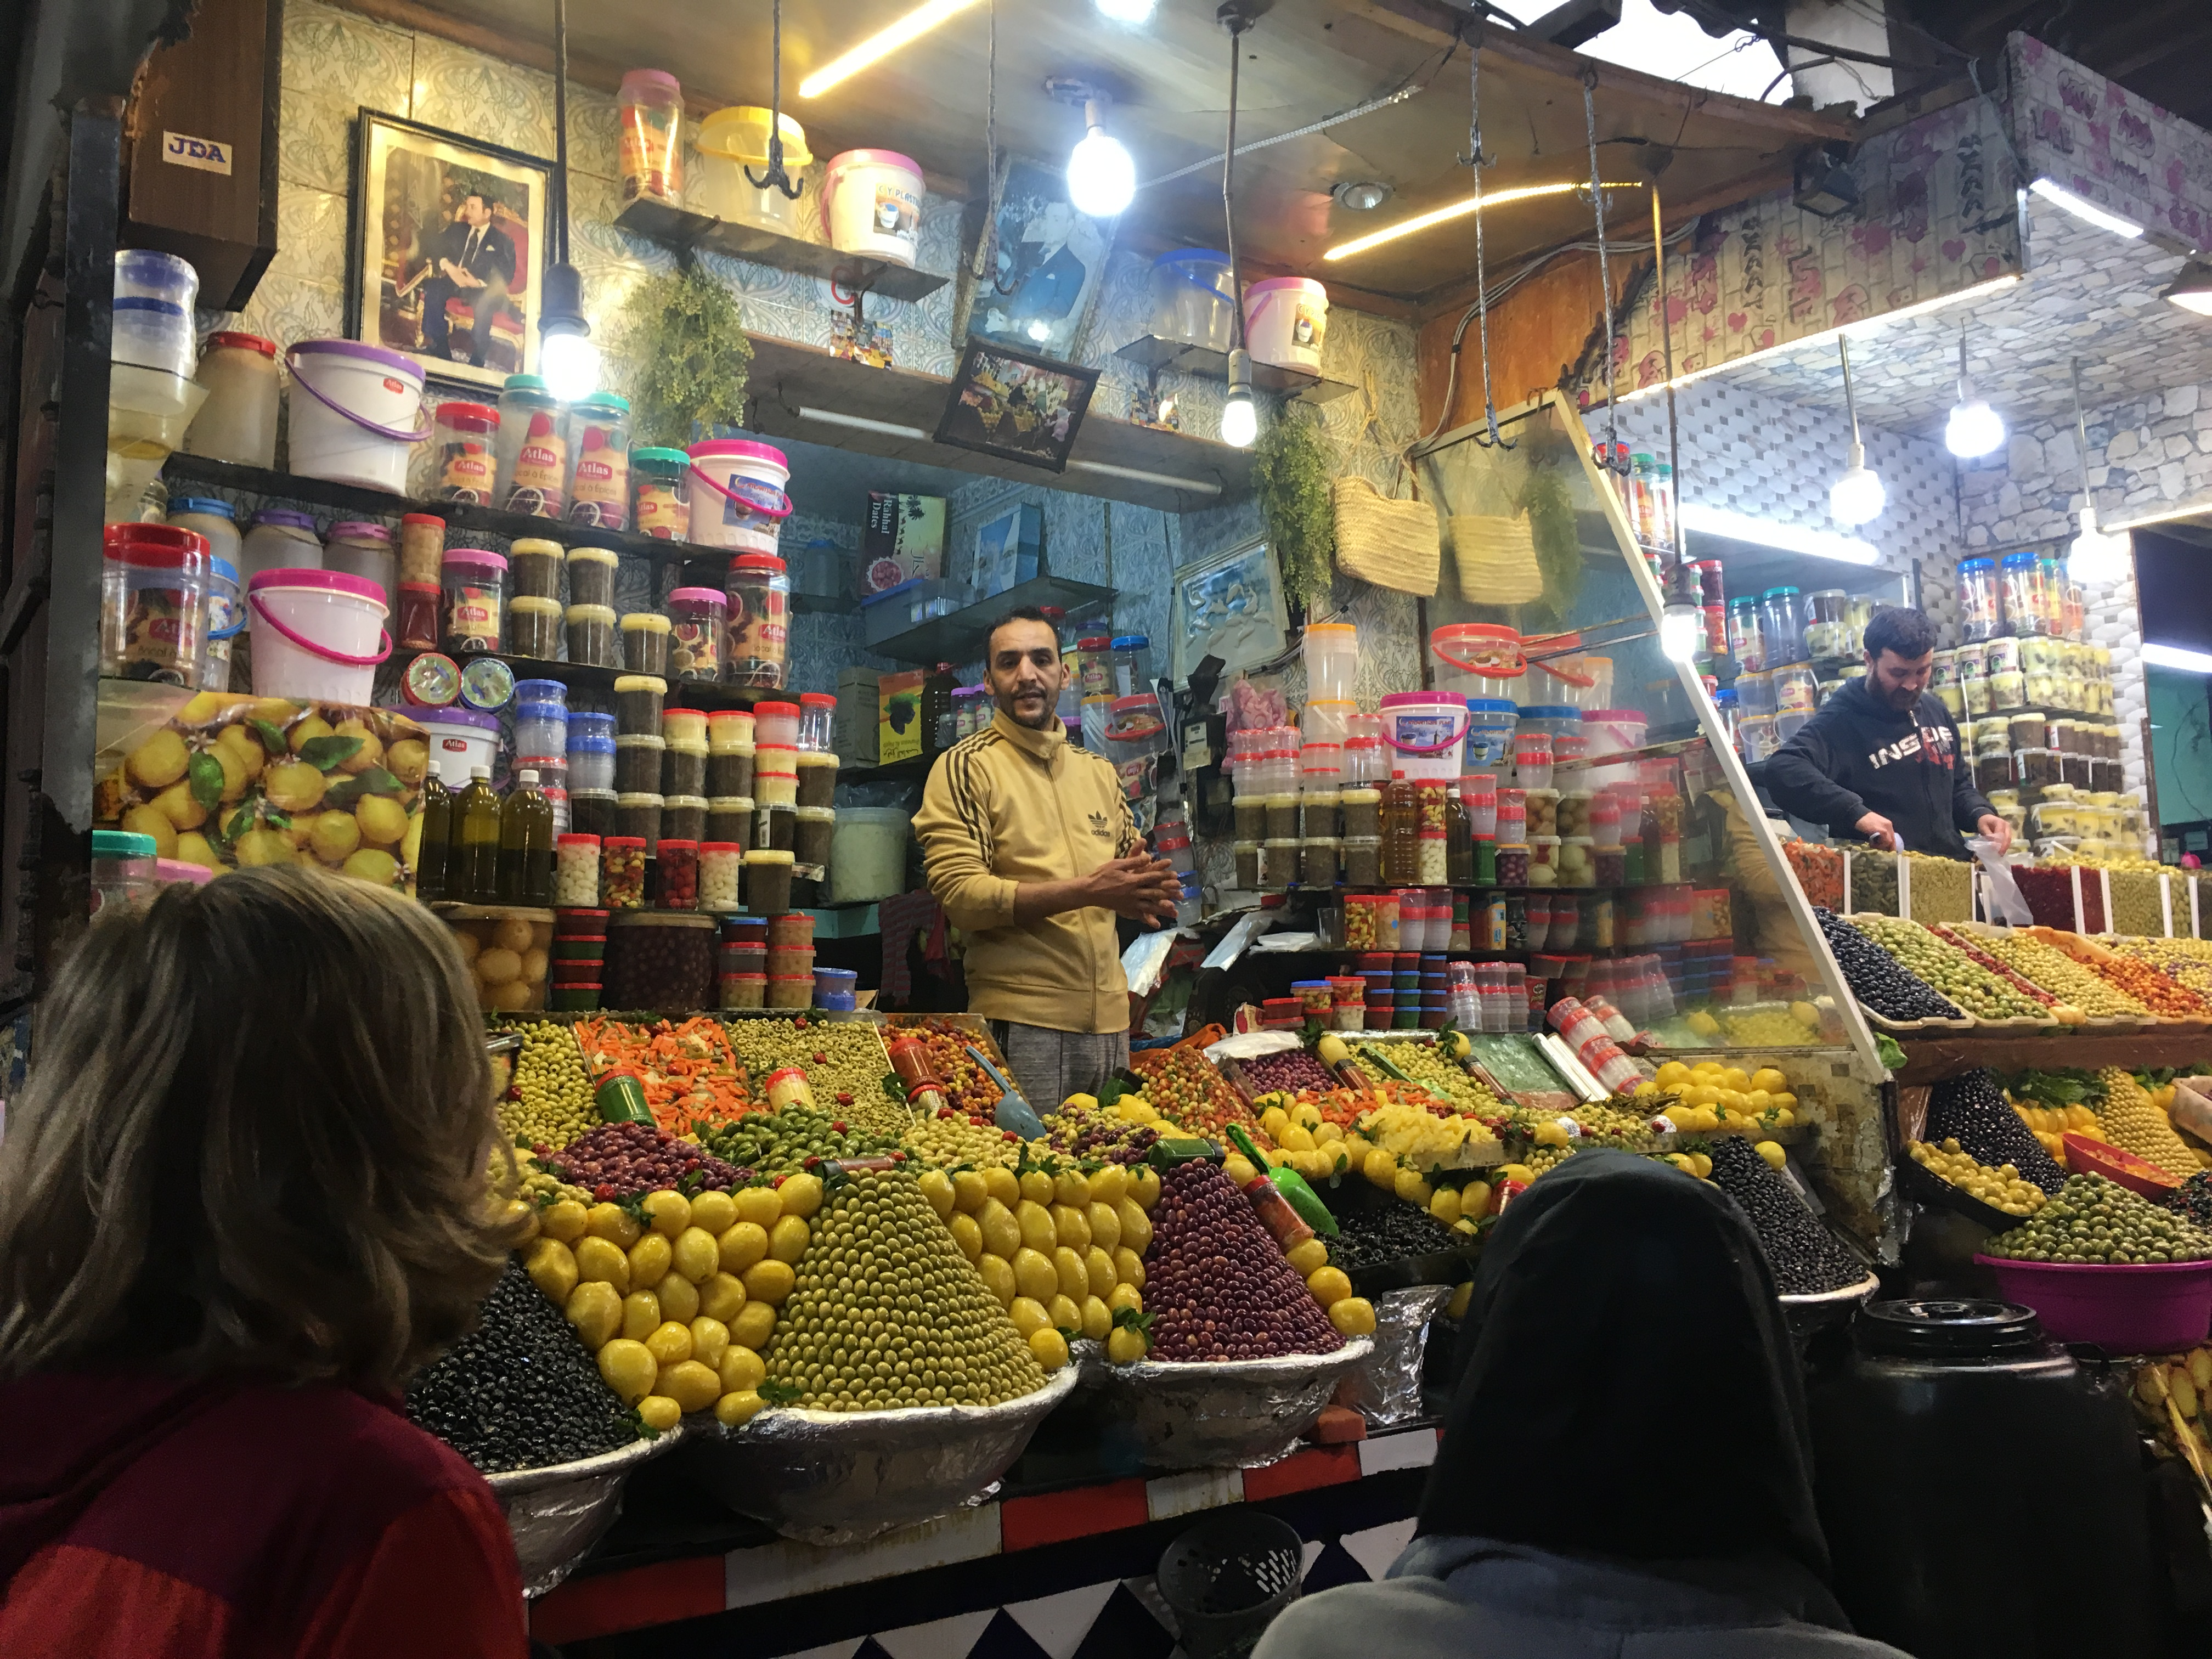 A shopkeeper in the market